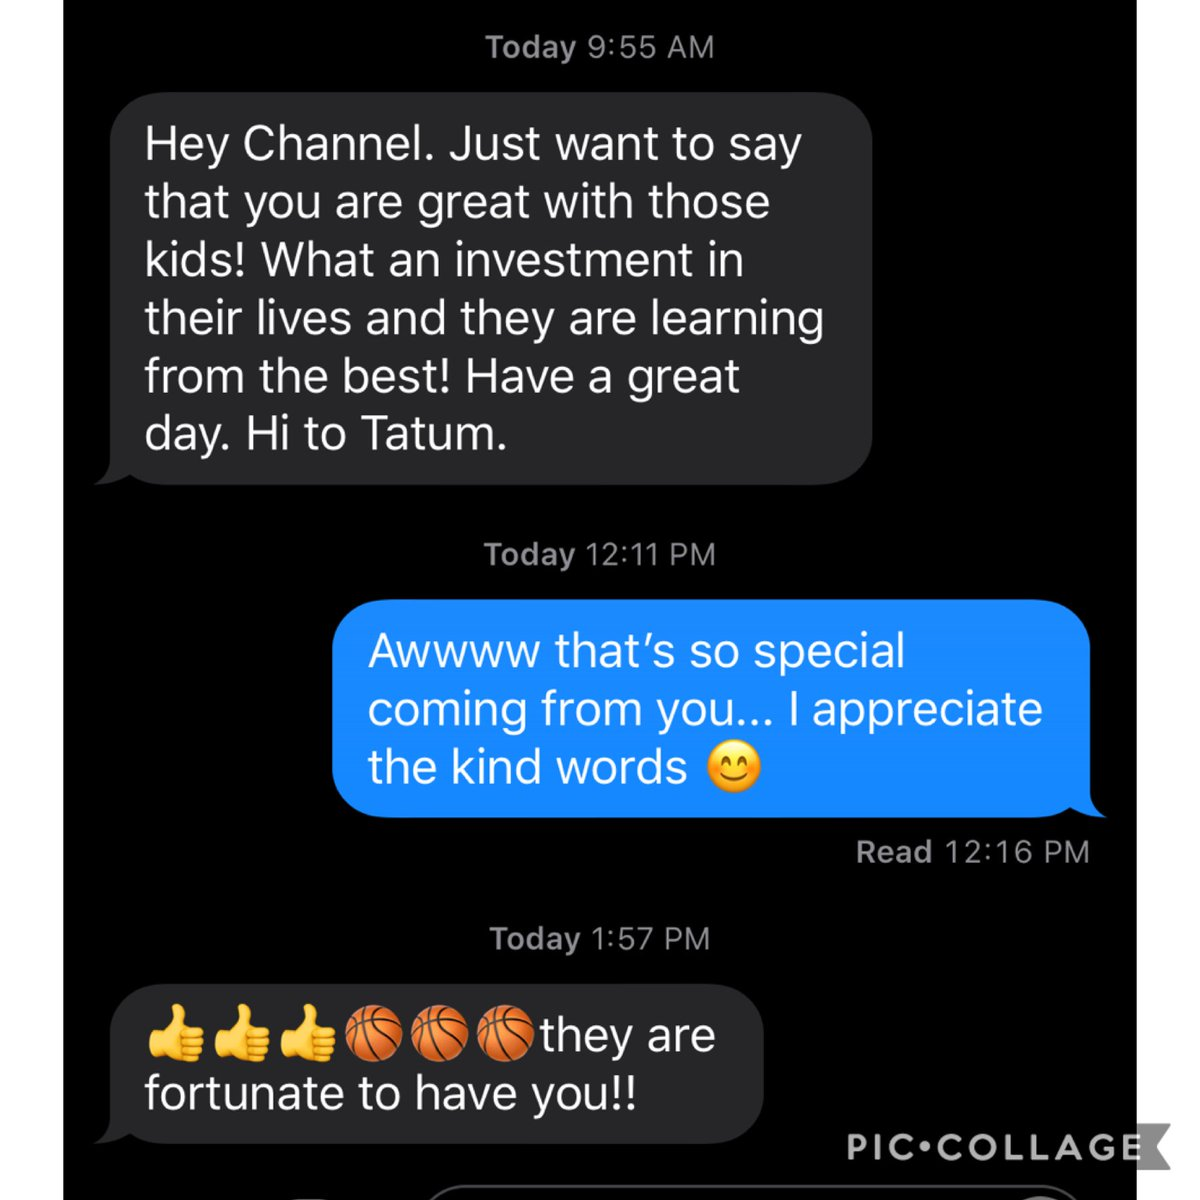 I really appreciate the kind words! All I want is for my daughter and her teammates that I train to be the best them they can be 🏀💪🏿 #Dreams #ReachingForGreatness #Hardwork